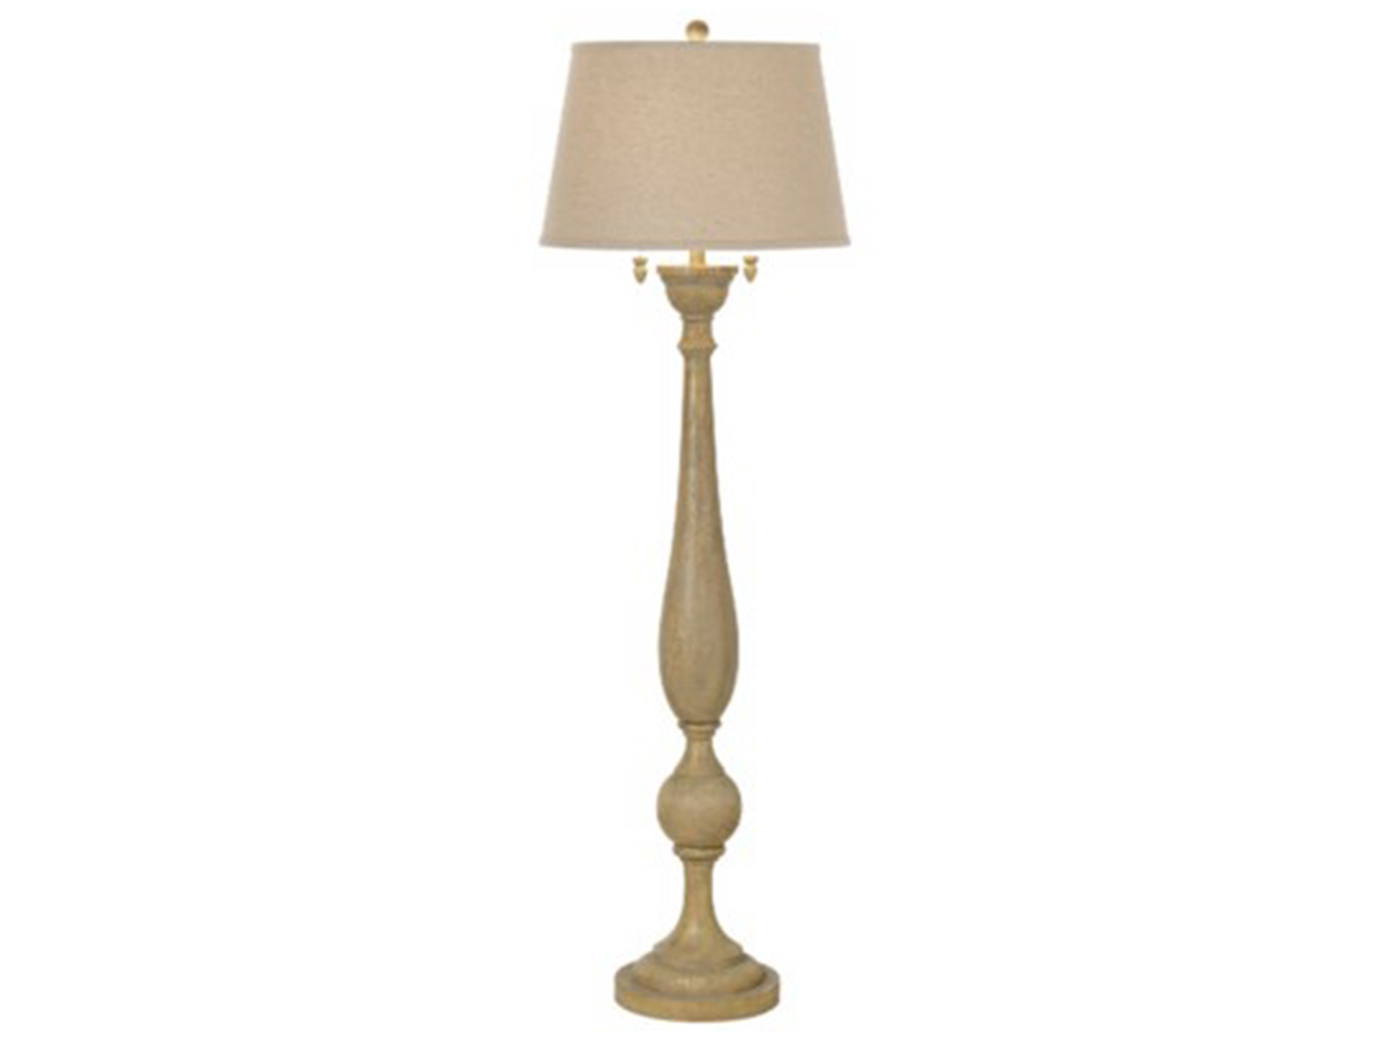 "Grey Wood Look Floor Lamp 61.5""H"